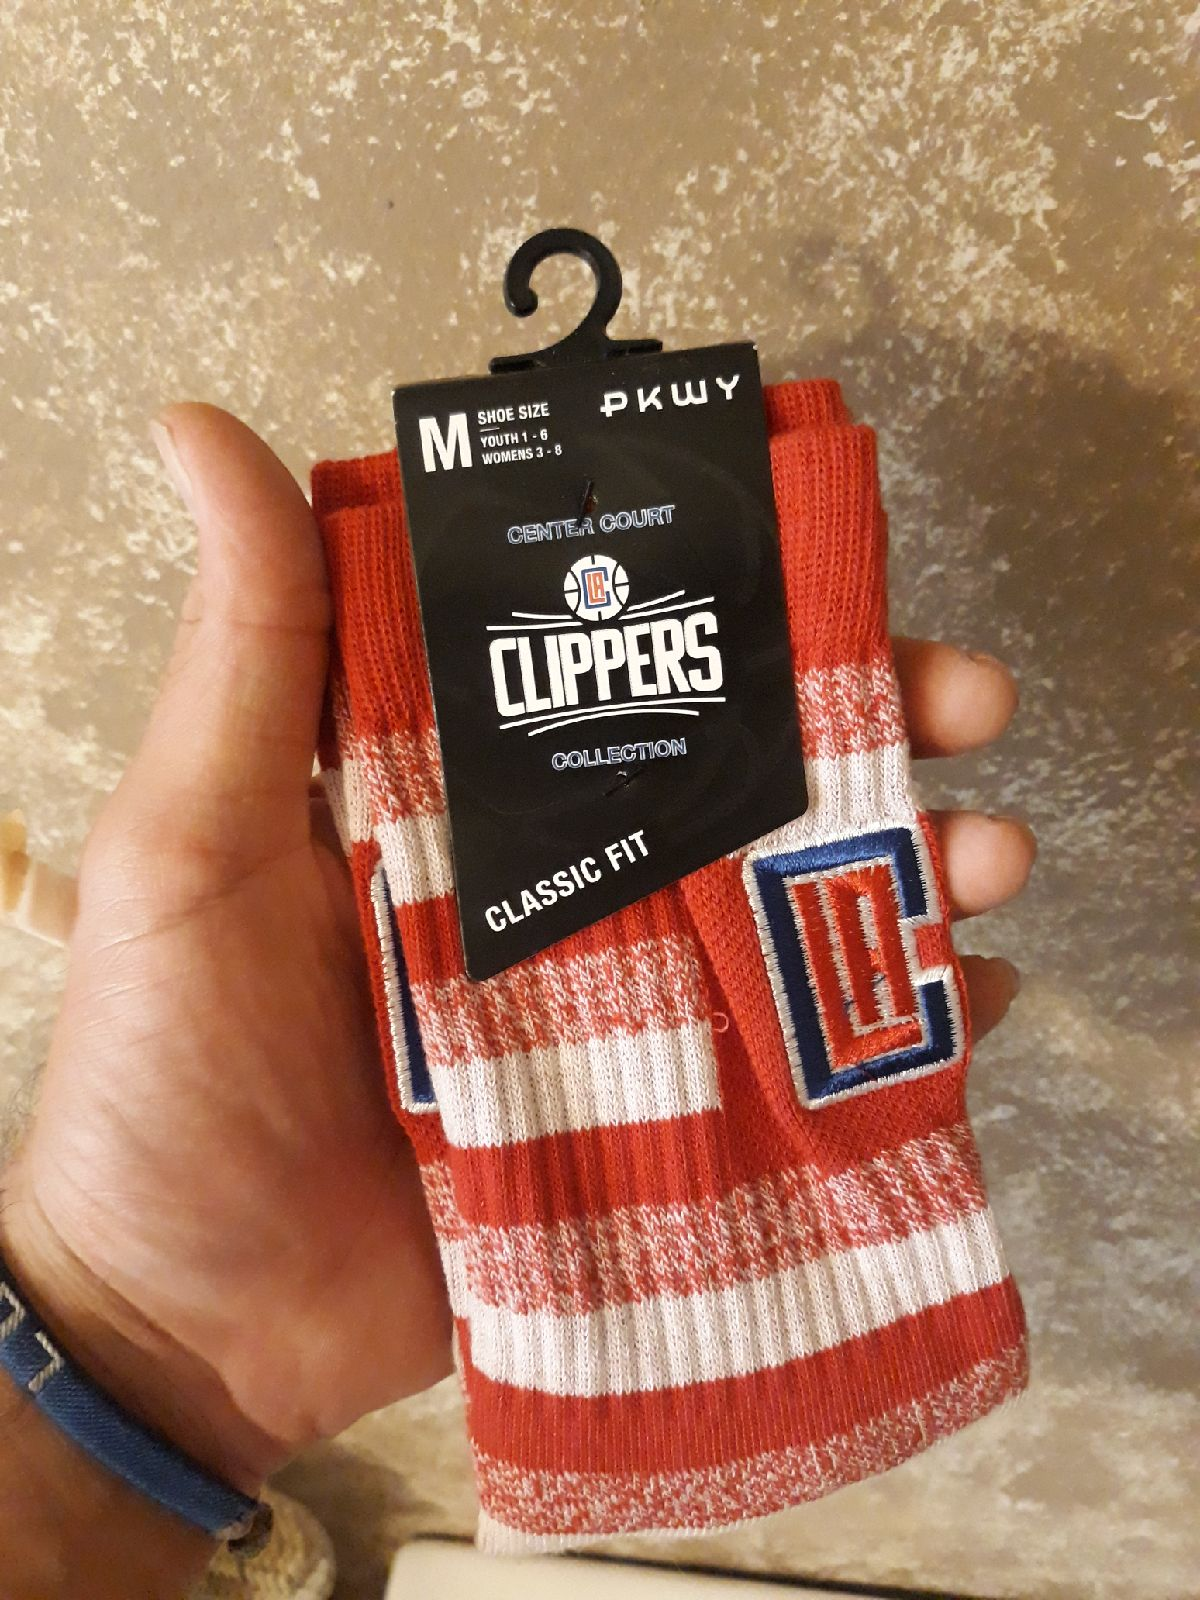 Clippers socks